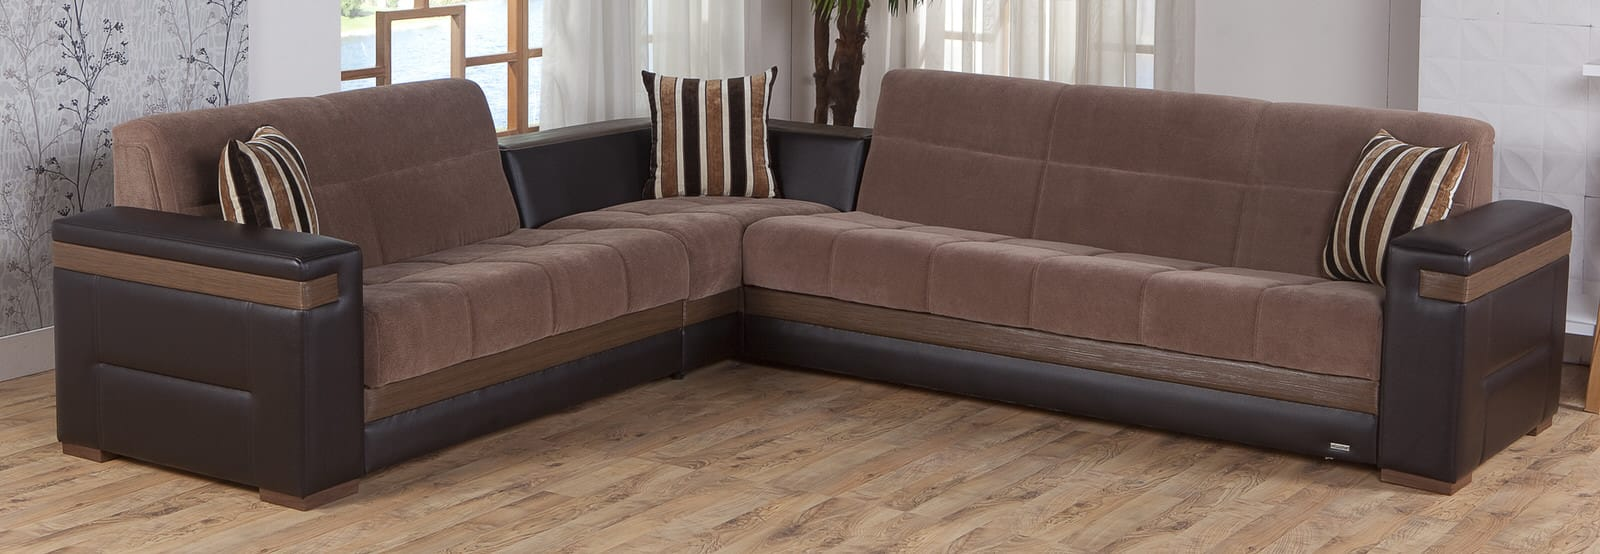 Moon troya brown sectional sofa by istikbal sunset